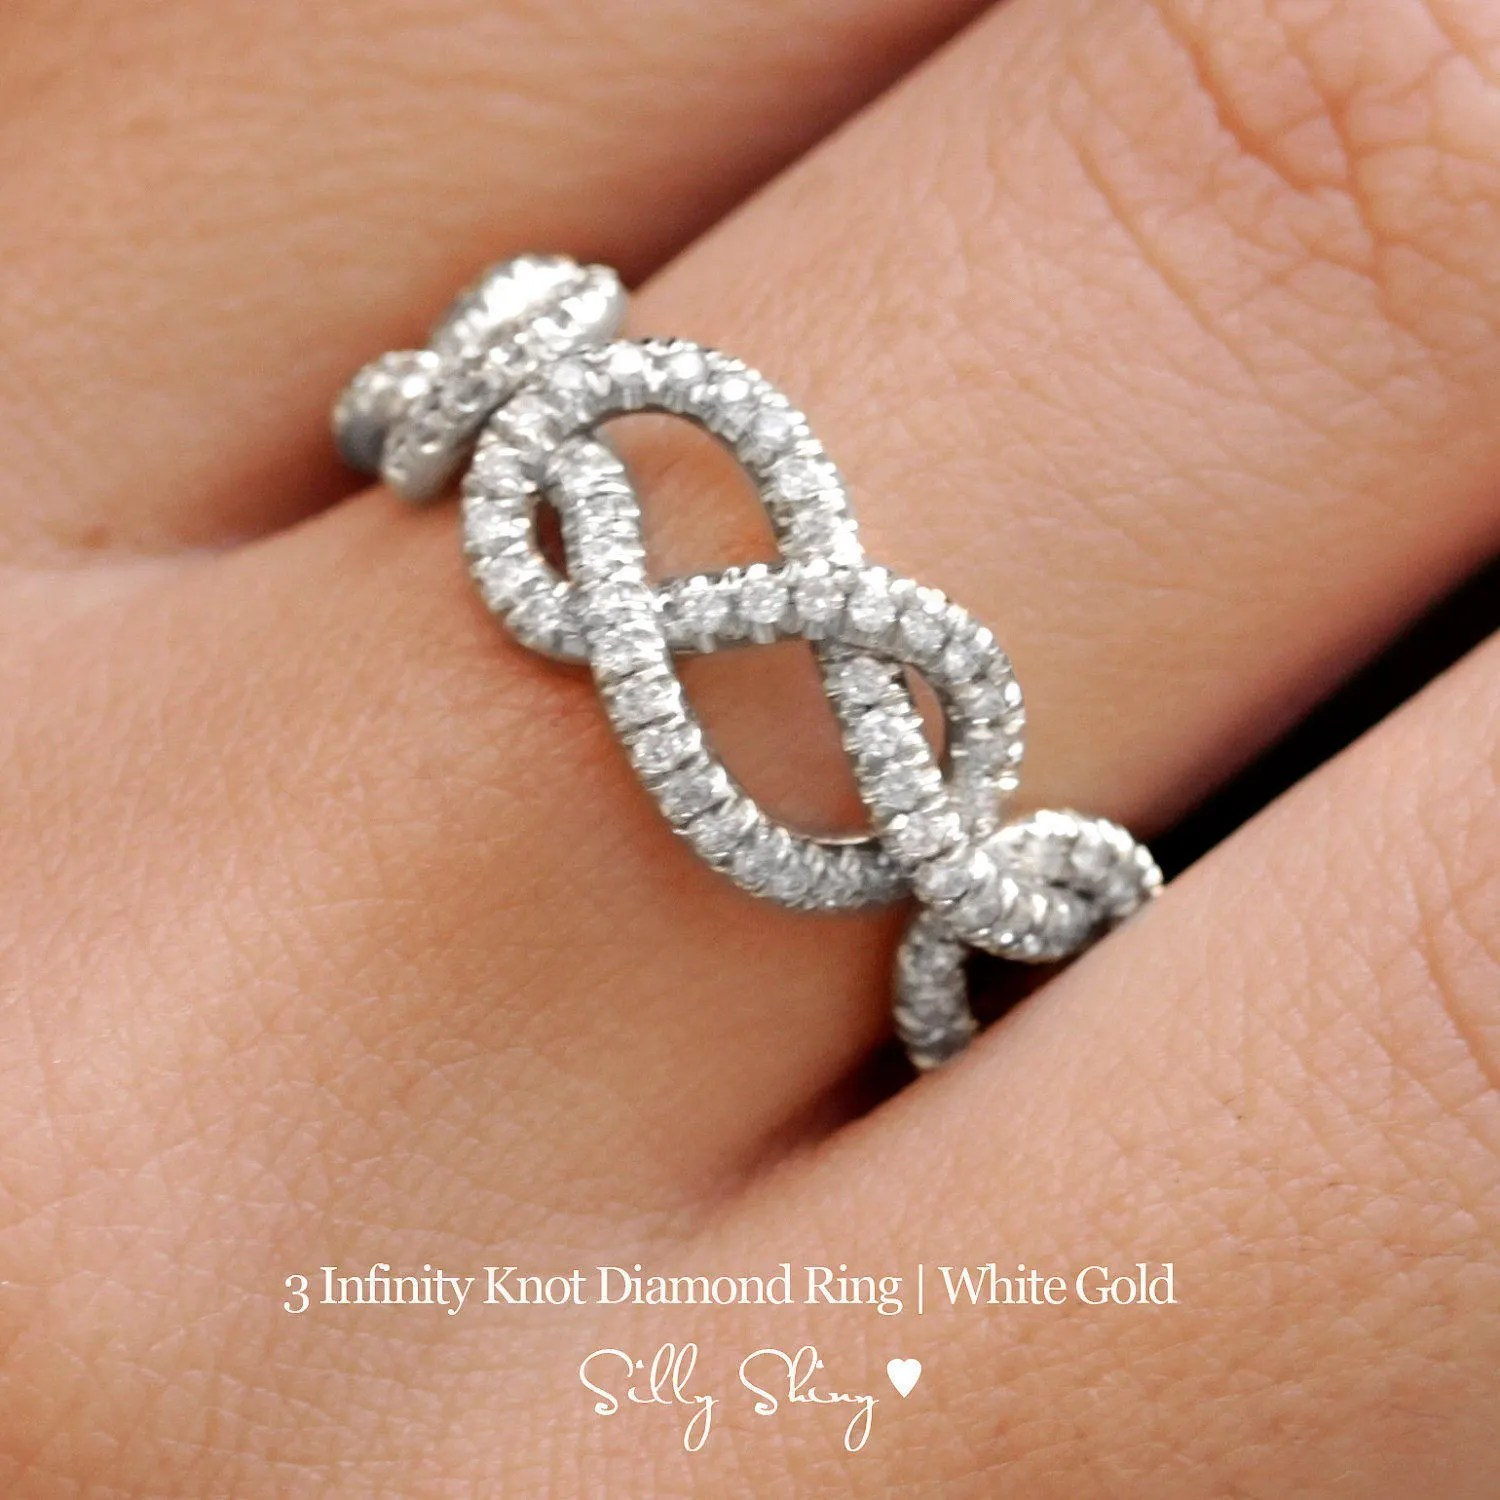 gold wedding band double infinity knot infinity diamond wedding band Triple Infinity Knot Ring 0 75 CT Diamond Wedding Band 14K Gold Wedding Ring Cluster Ring Art Deco Ring Infinity Ring